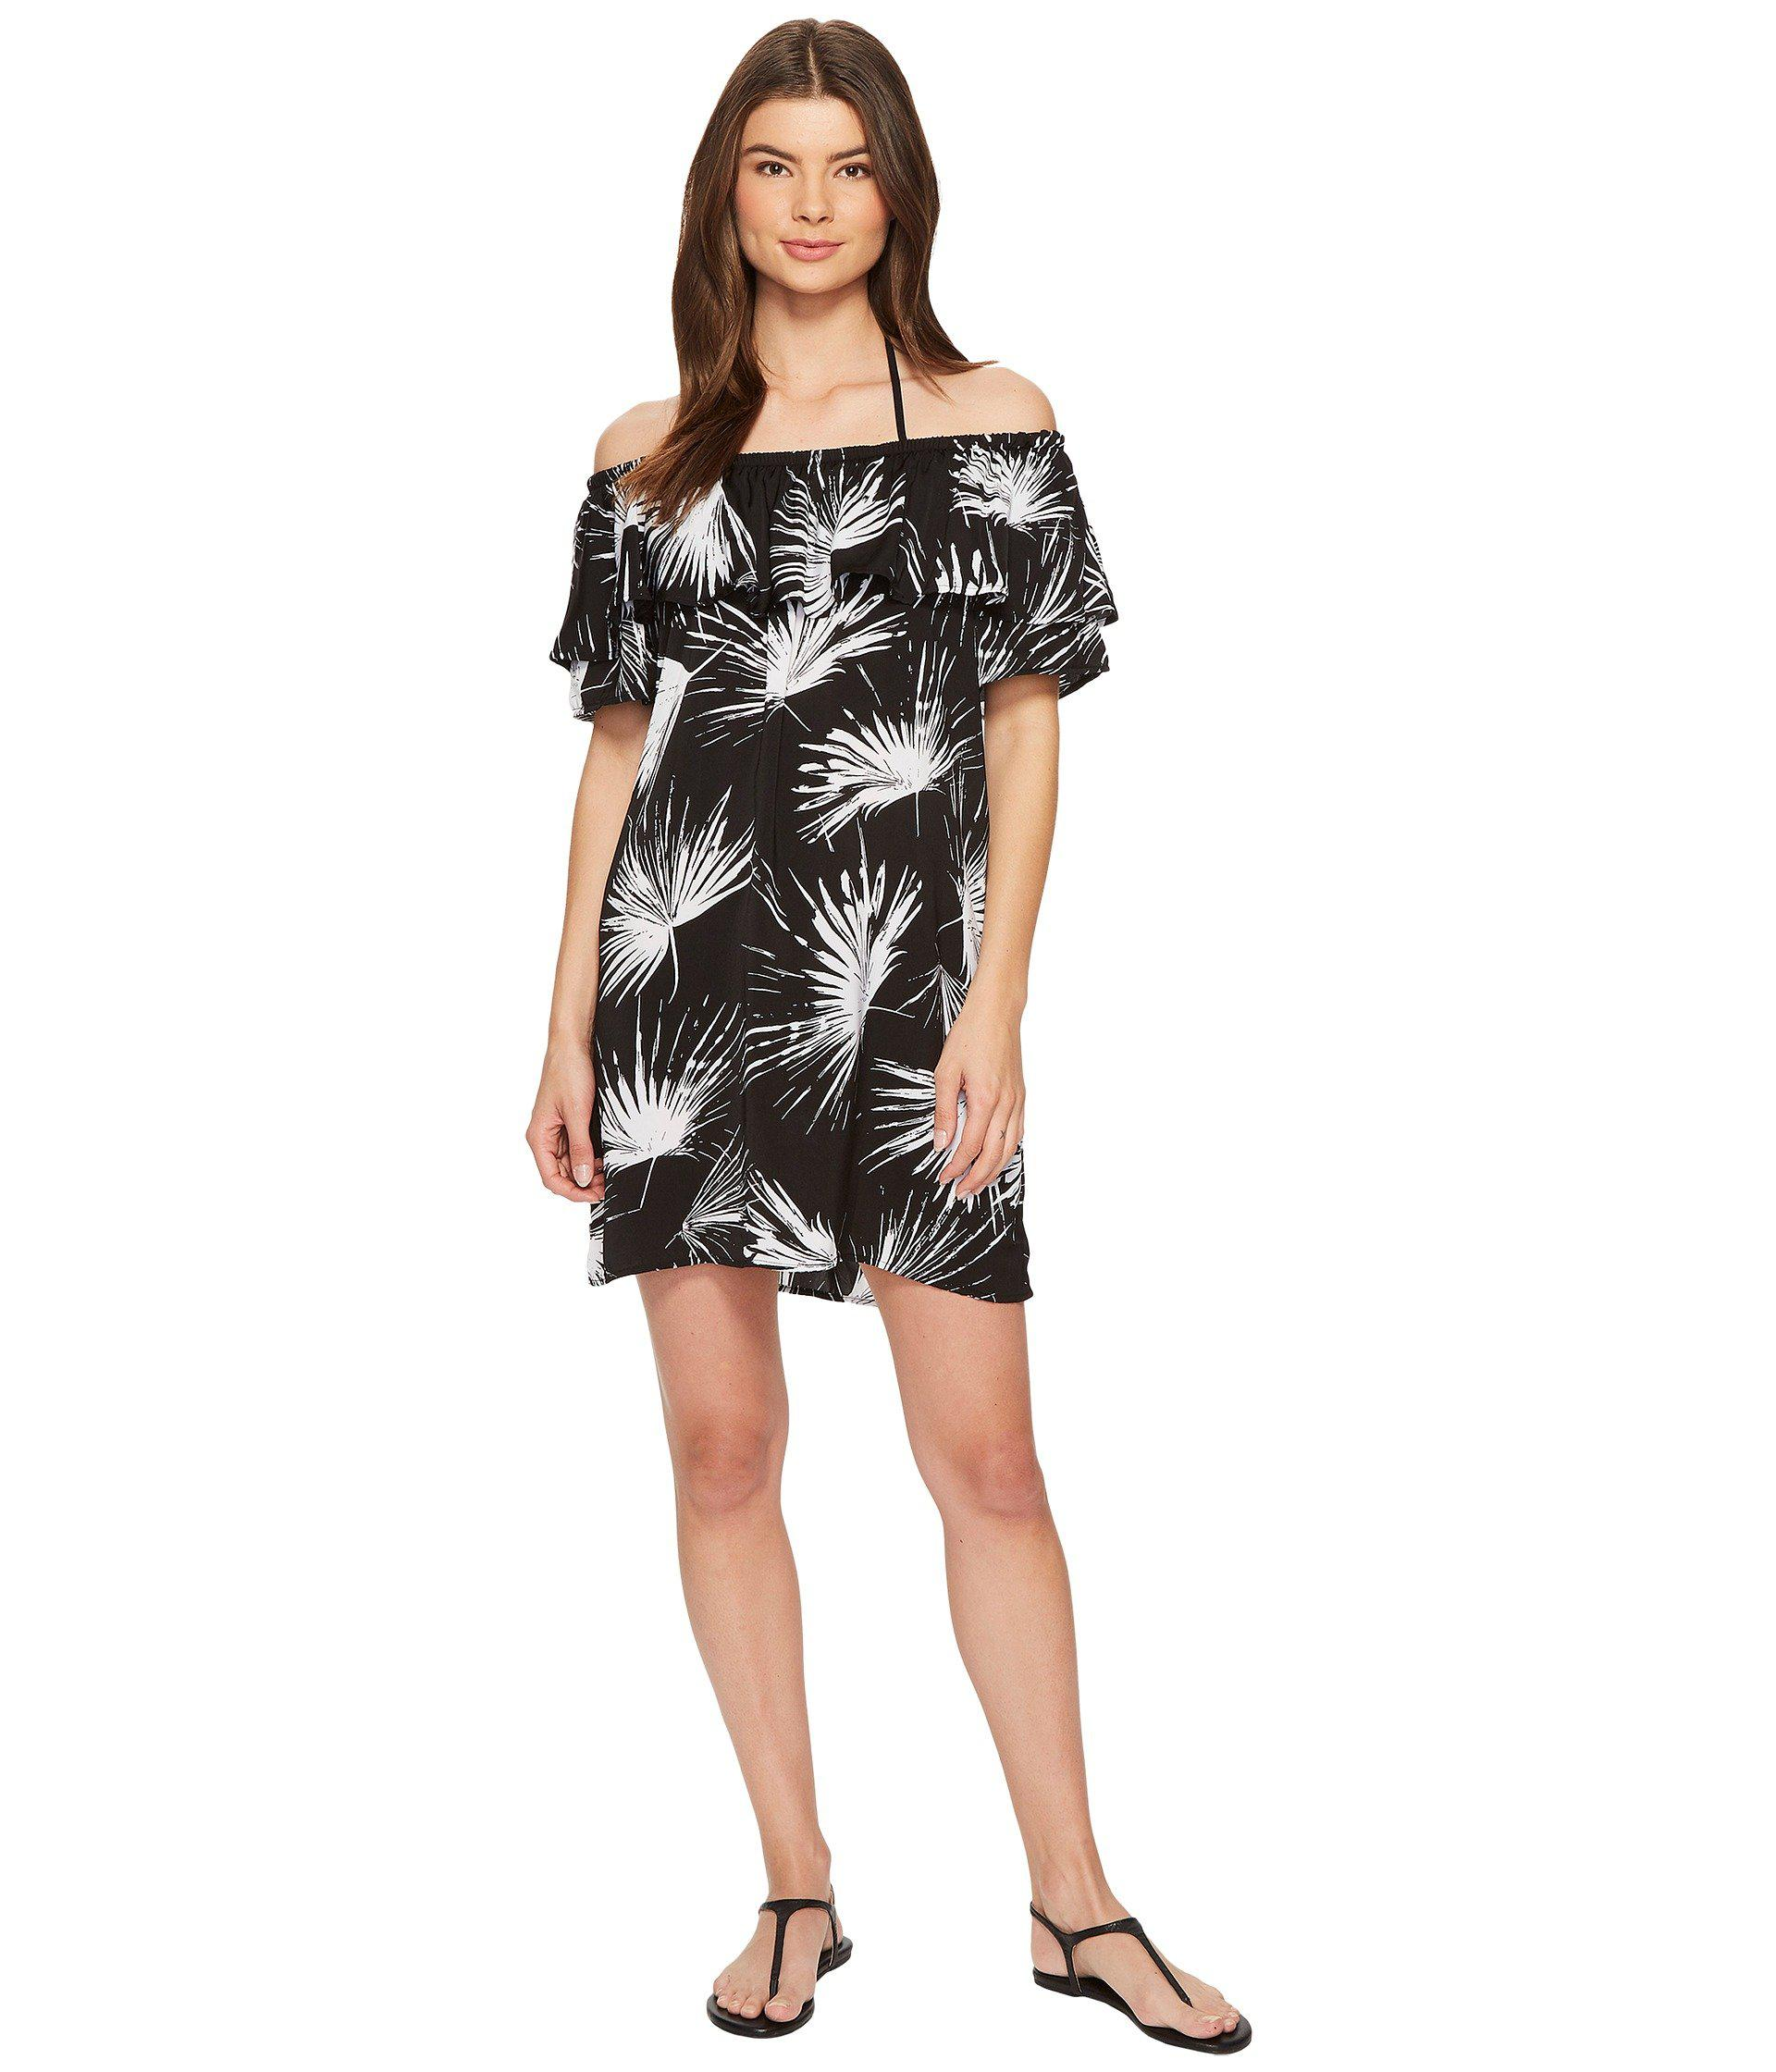 4a69fa810d65b Gallery. Previously sold at: 6PM, Zappos · Women's Off The Shoulder Dresses